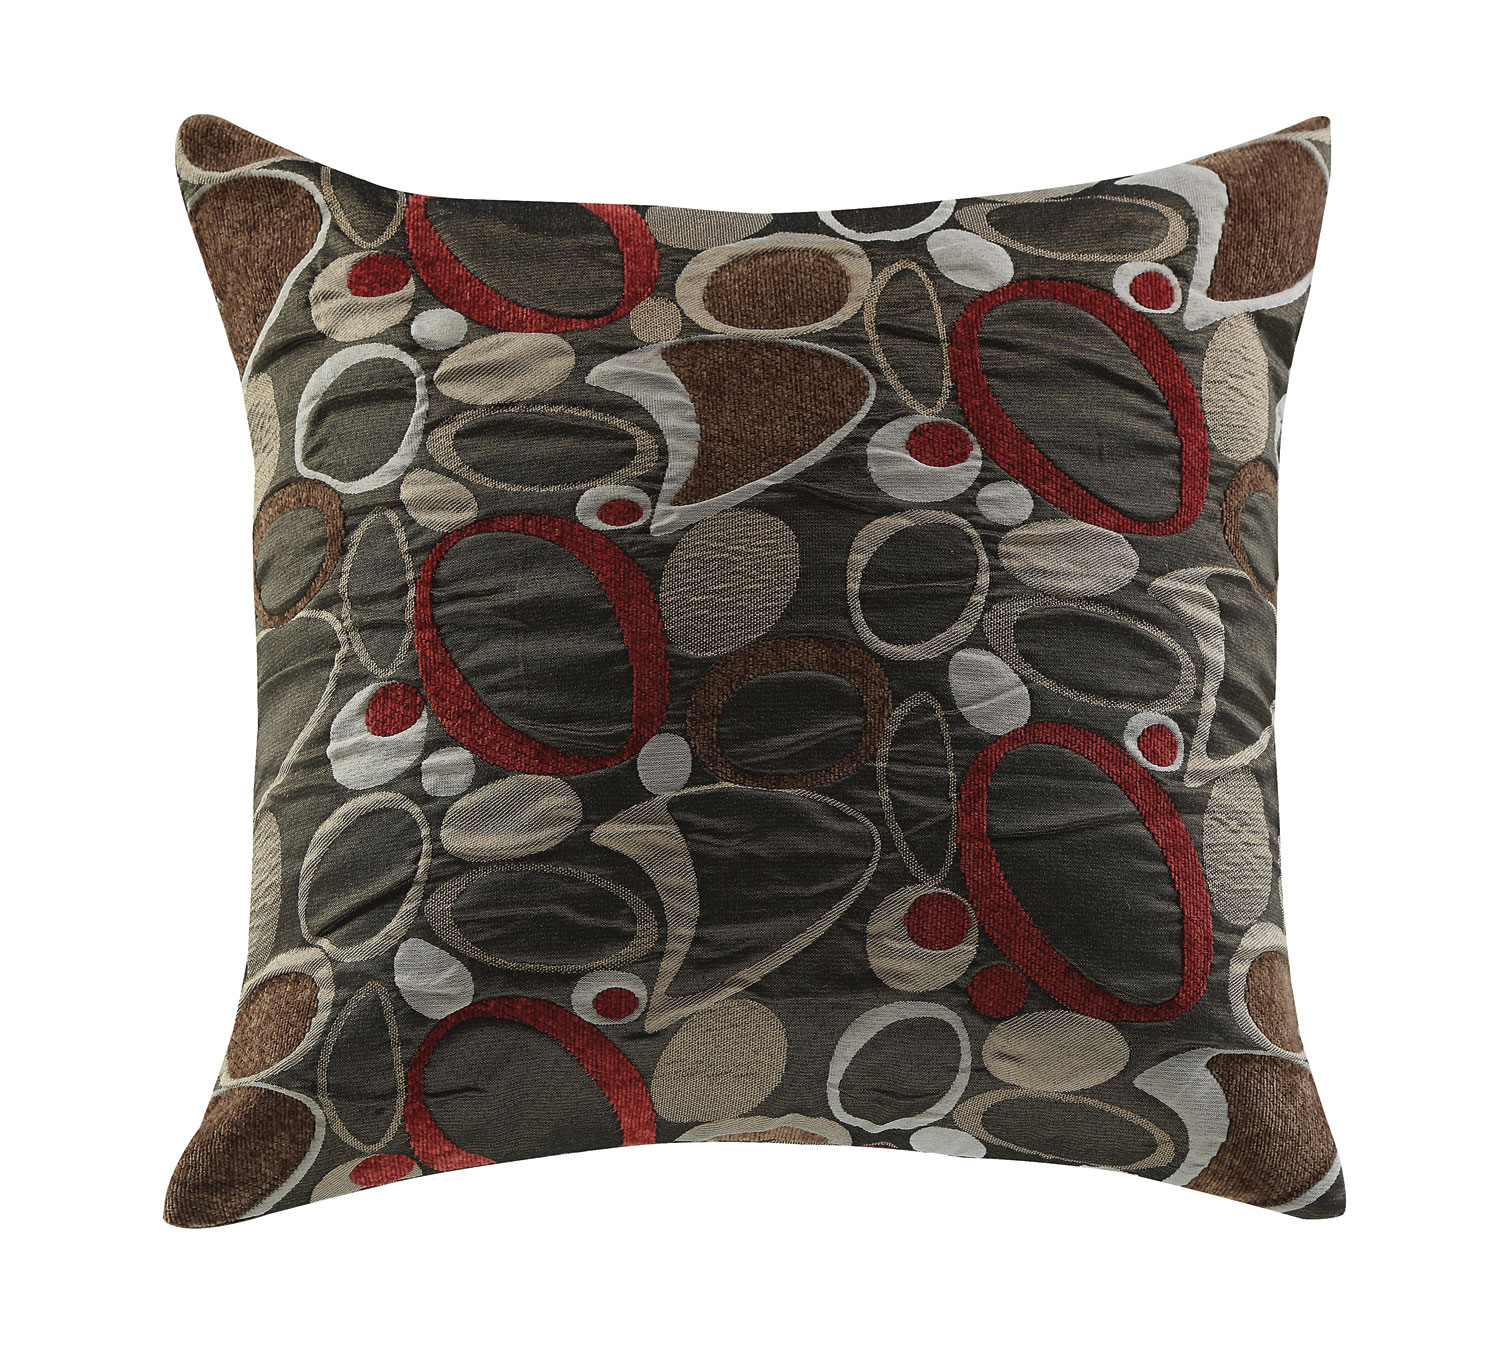 Coaster Throw Pillows Pillow - Item Number: 905008